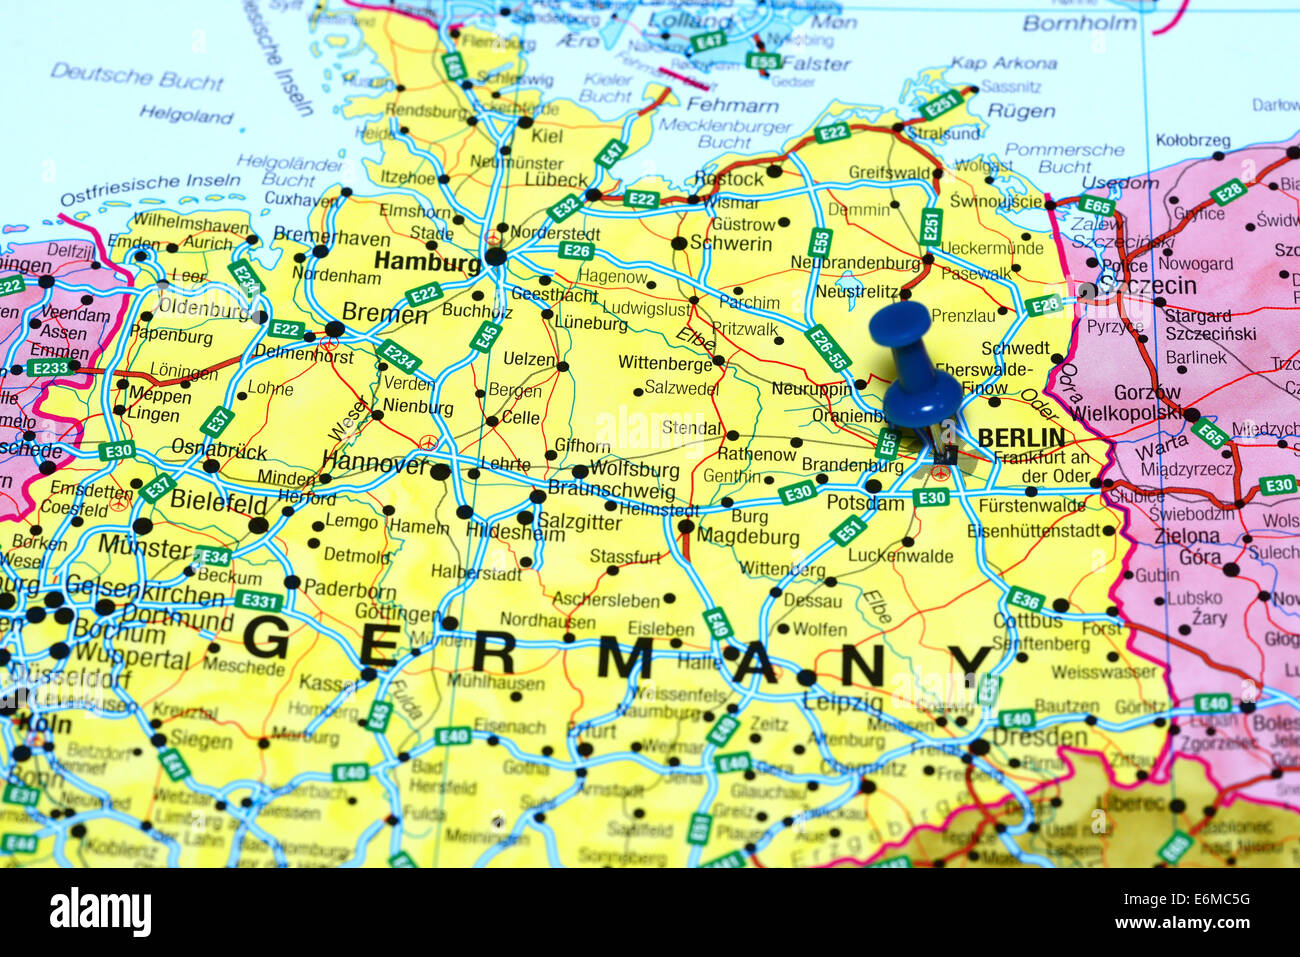 Berlin pinned on a map of europe Stock Photo: 72978012   Alamy